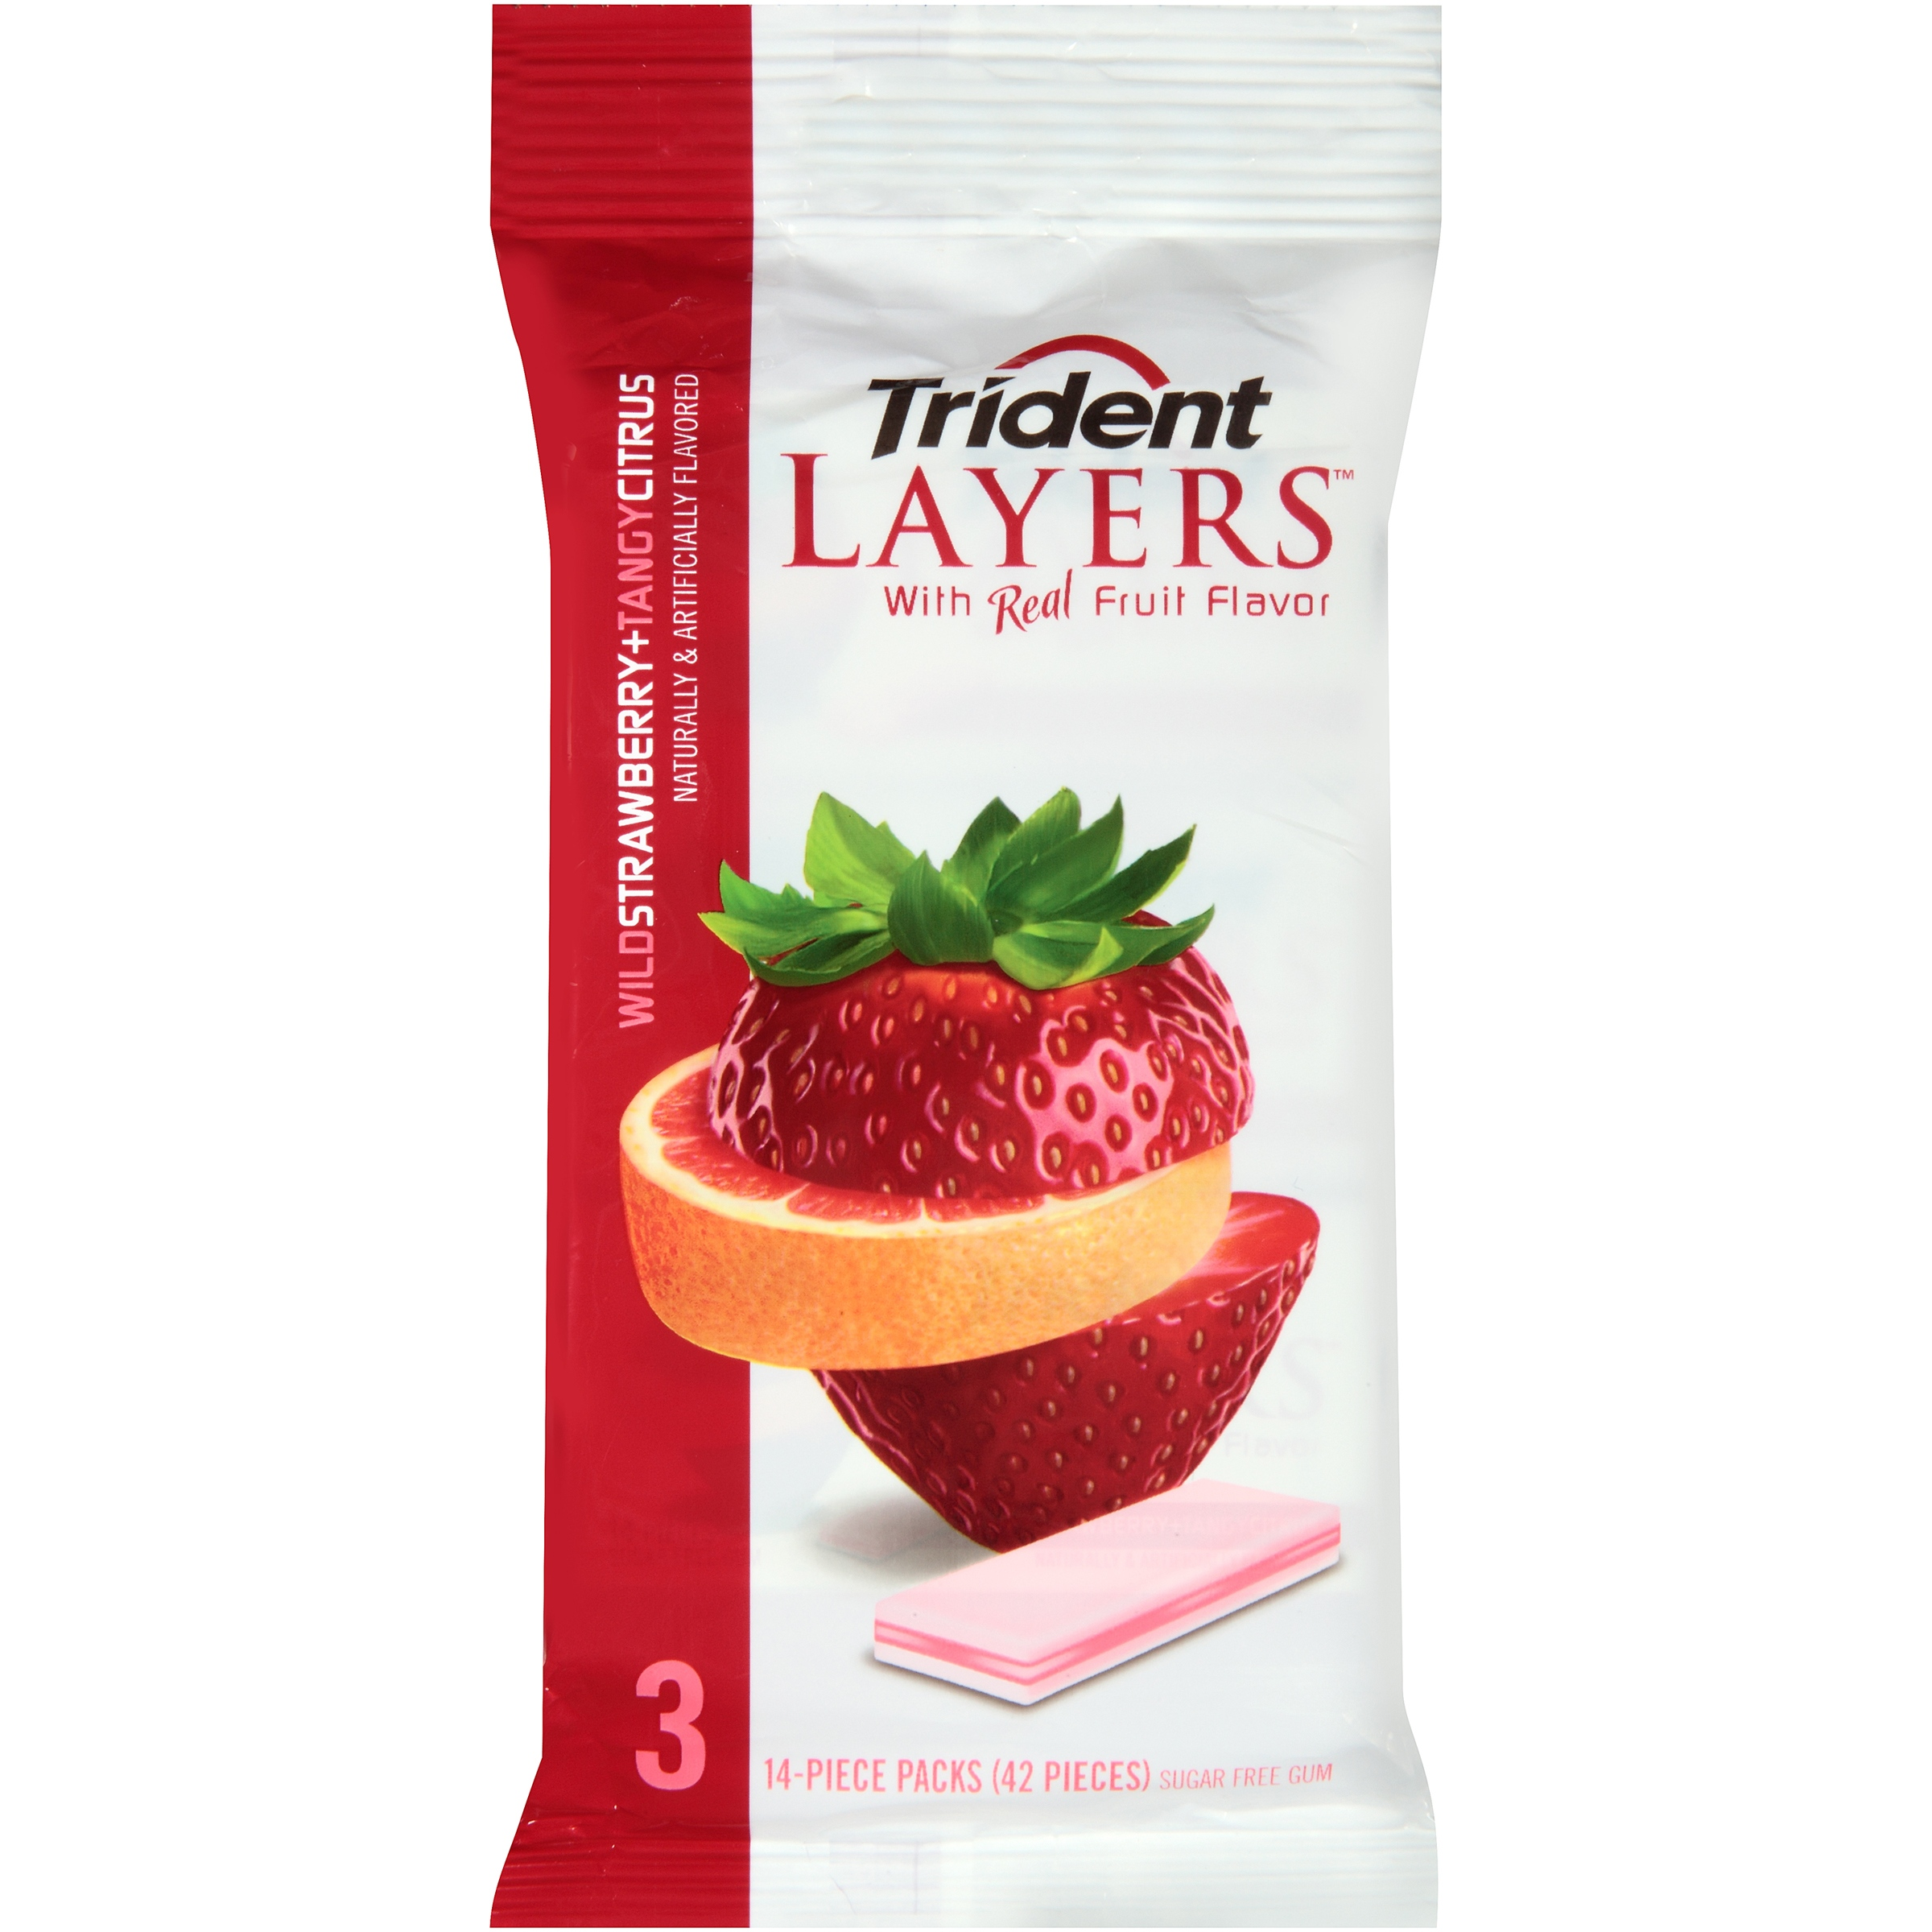 Trident Layers Wild Strawberry and Tangy Citrus Sugar Free Gum- 3 PK, 3.0 PACK by Mondelez Global LLC